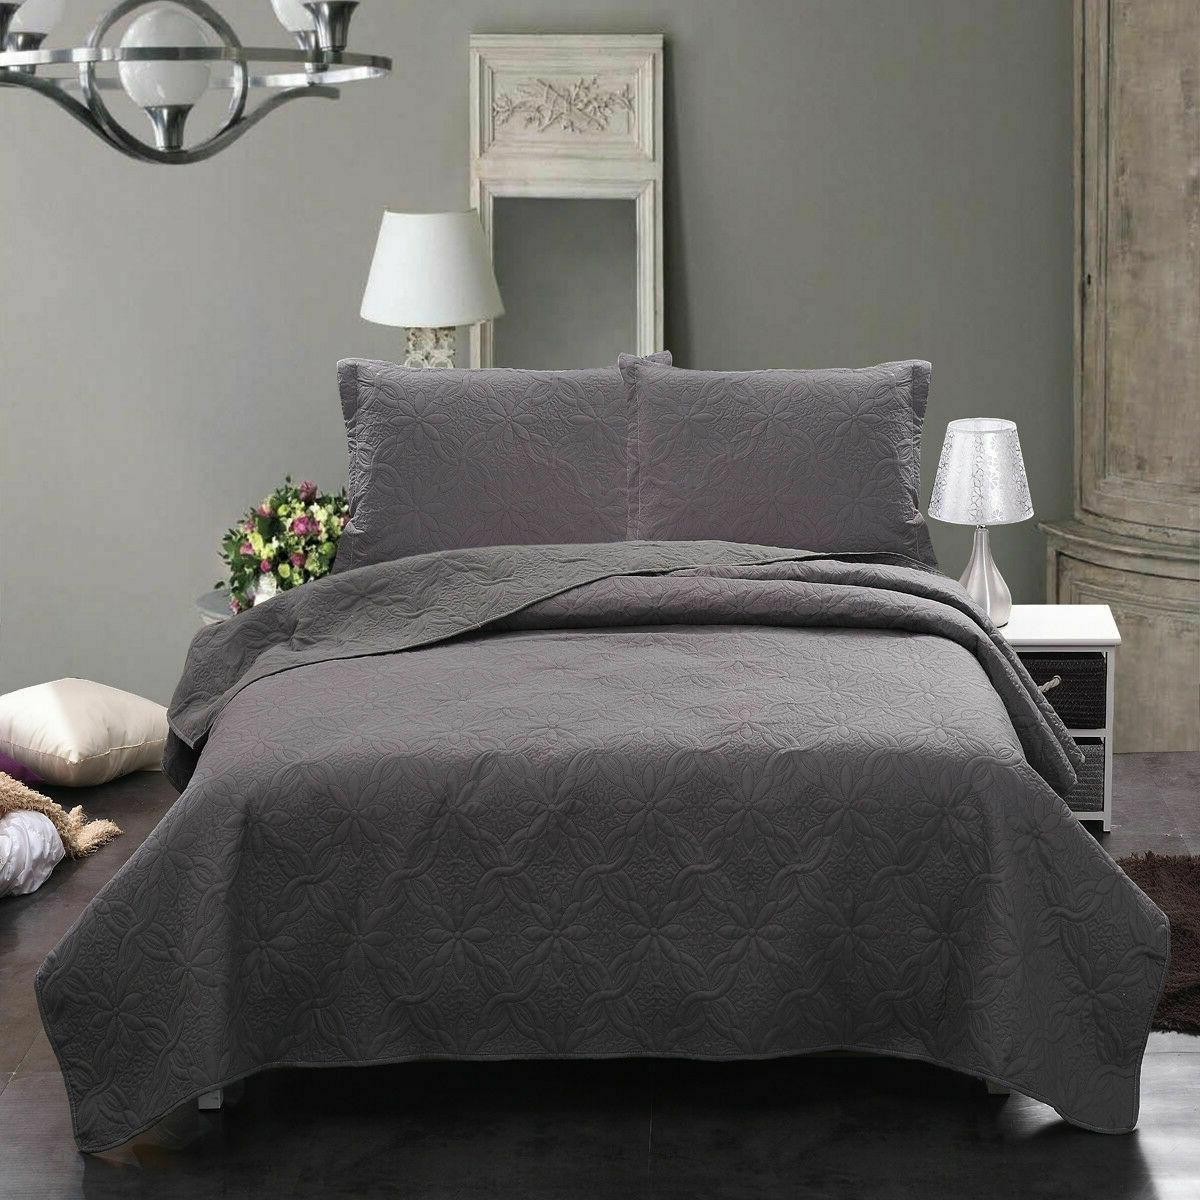 Bedspread Coverlet Set Comforter Bedding Quilt Set